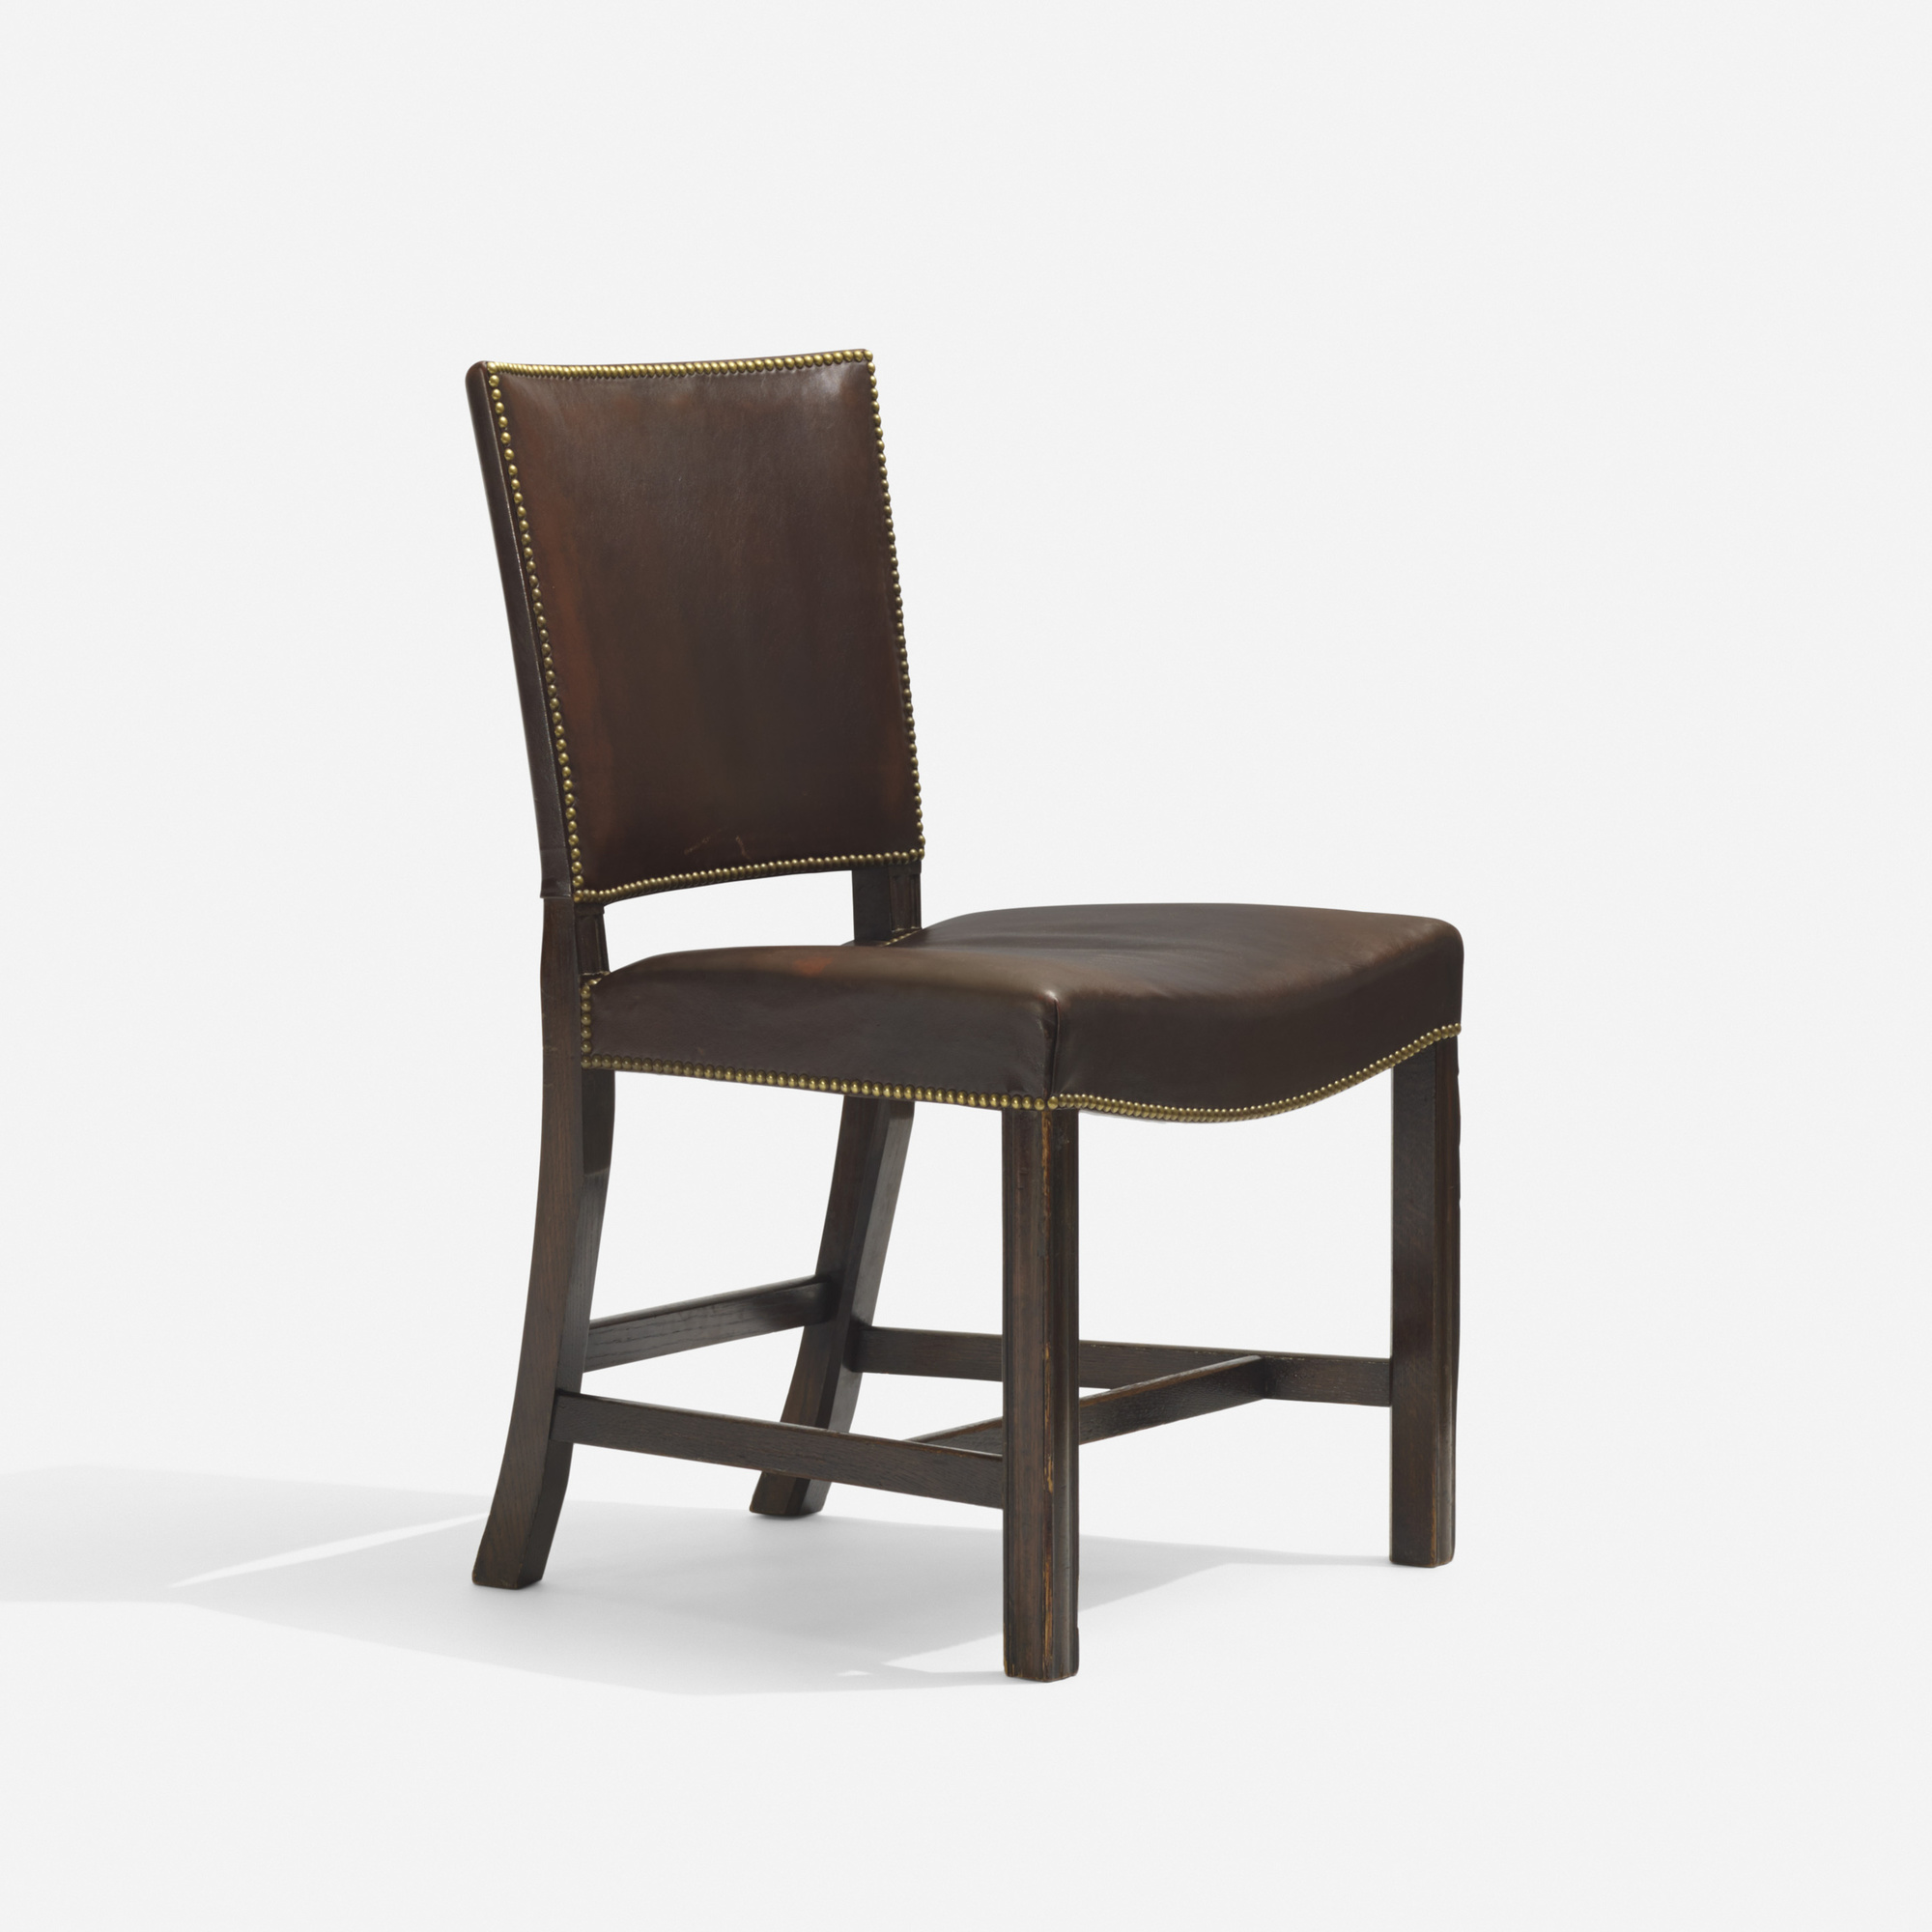 237: Kaare Klint / Barcelona chair, model 3758 (1 of 3)